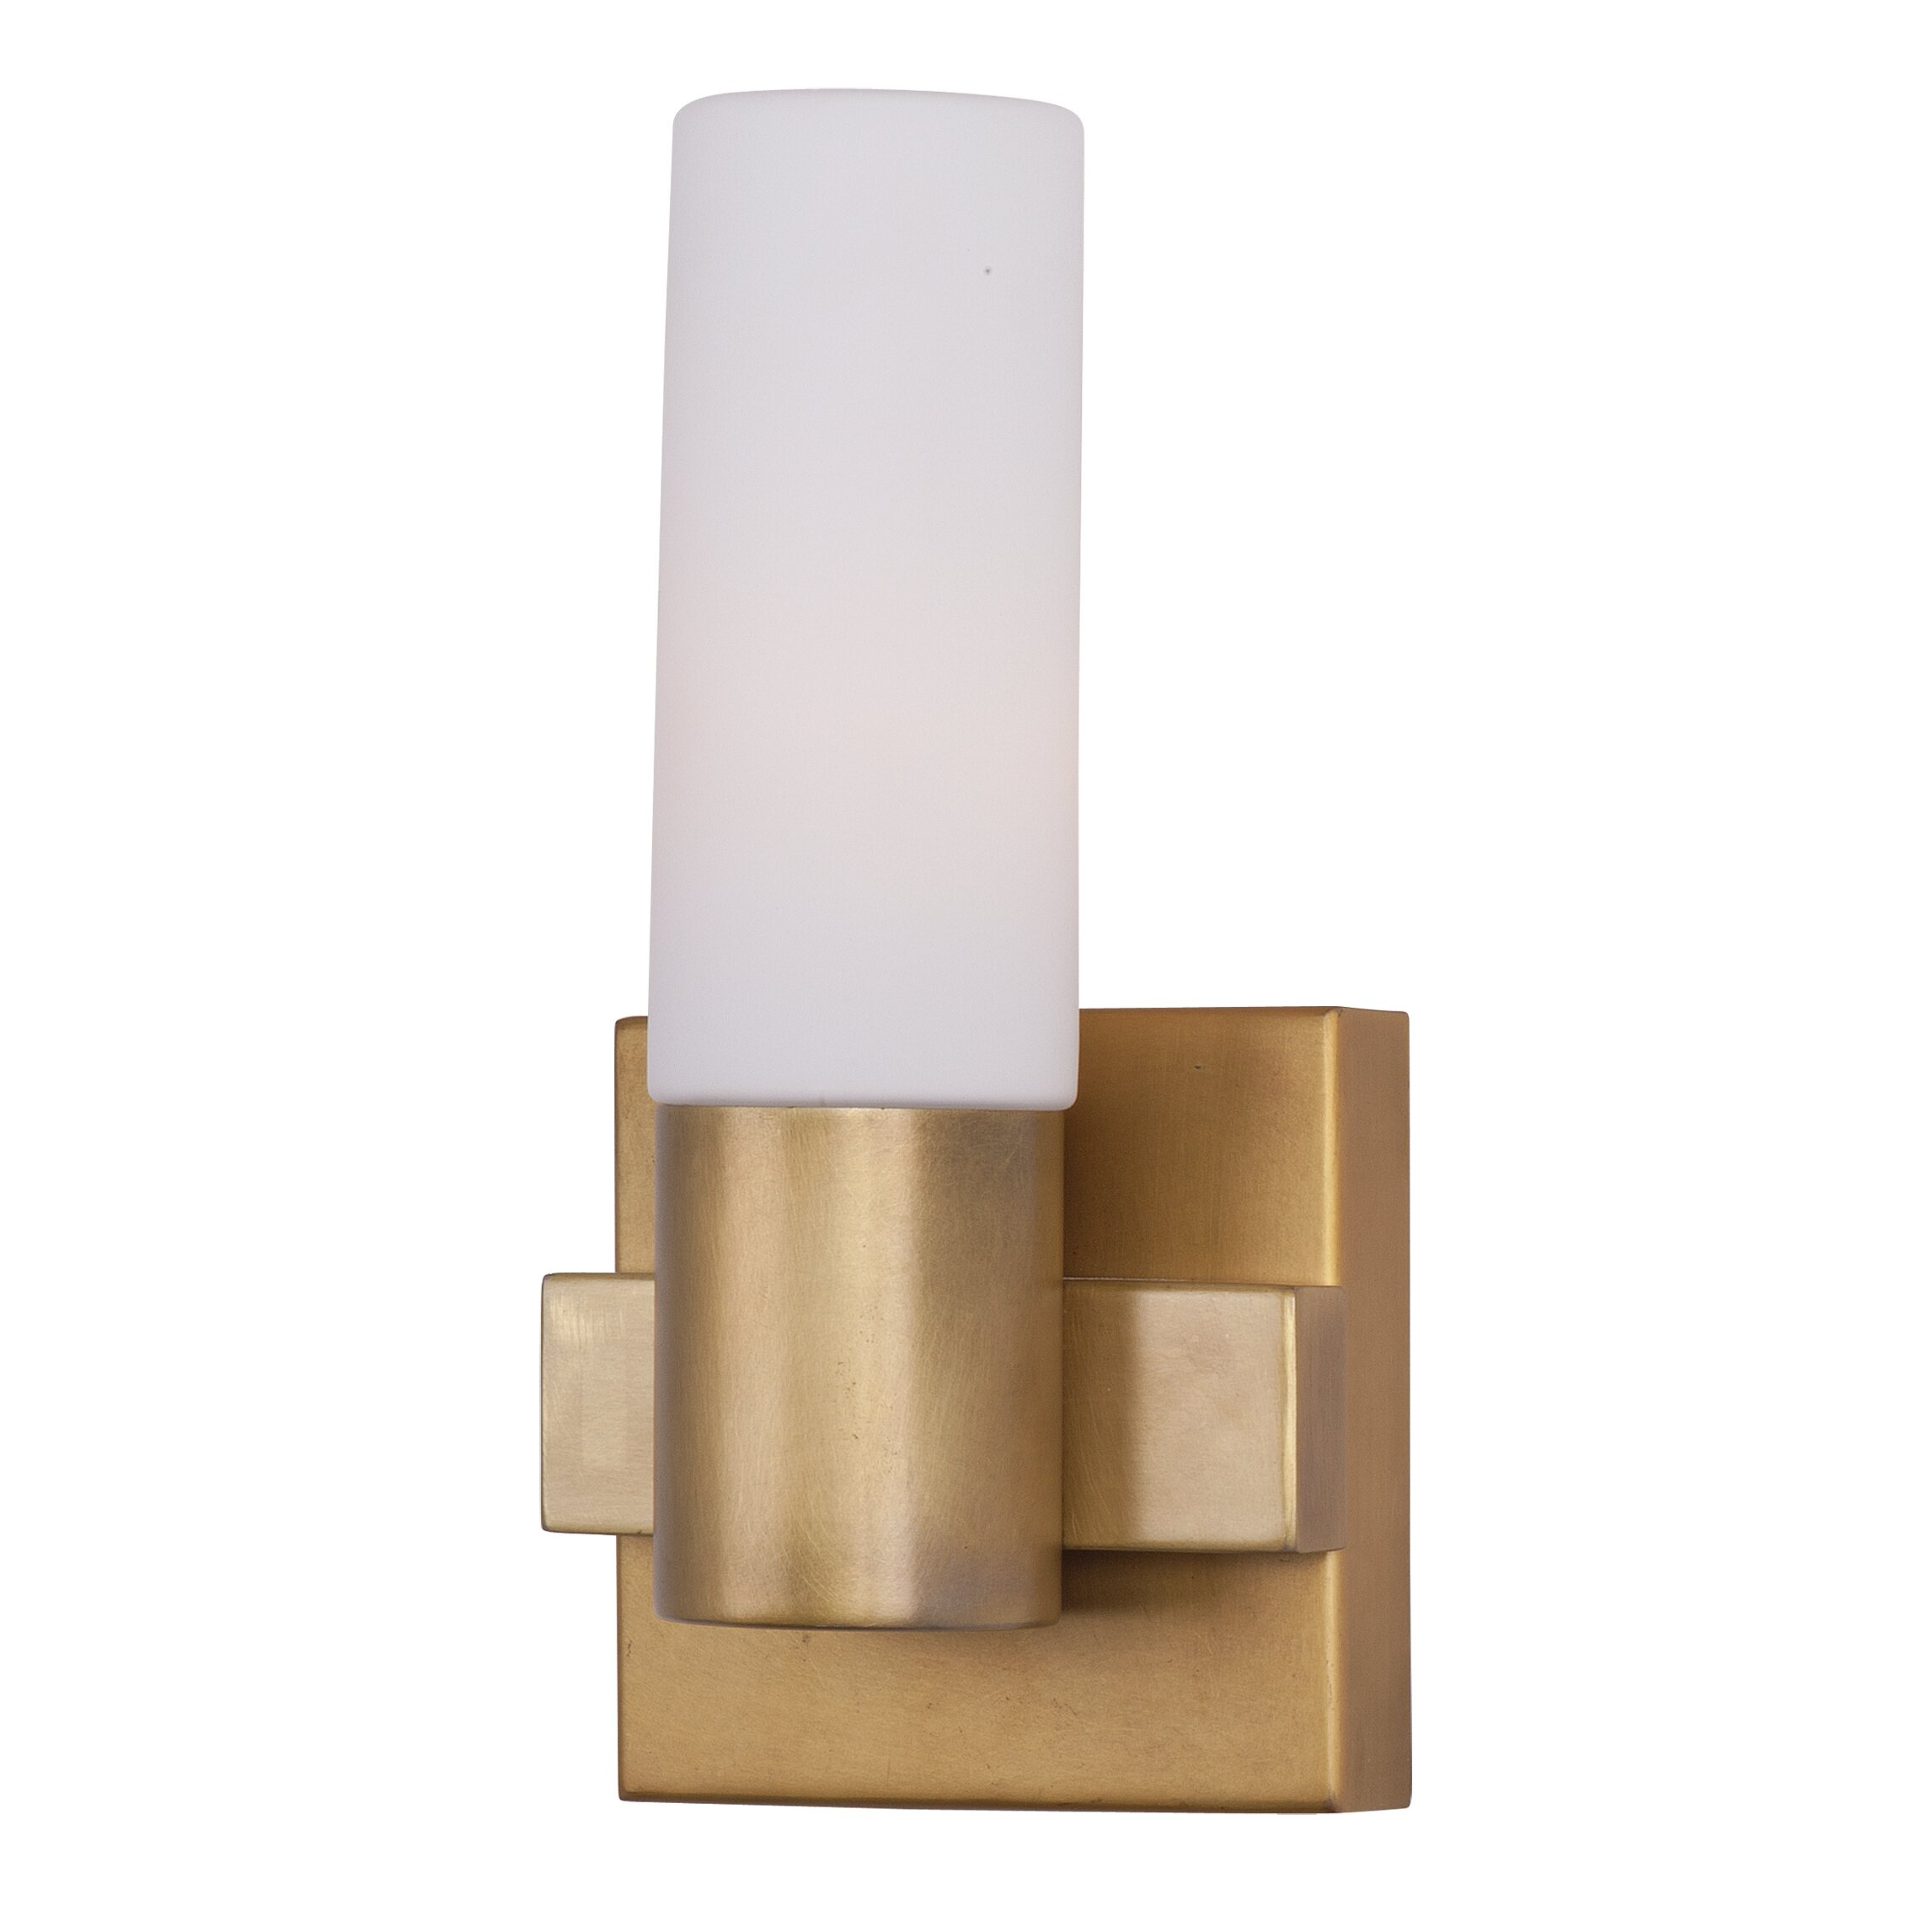 Wall Sconces At Wayfair : Maxim Lighting Contessa 1-Light Wall Sconce Wayfair